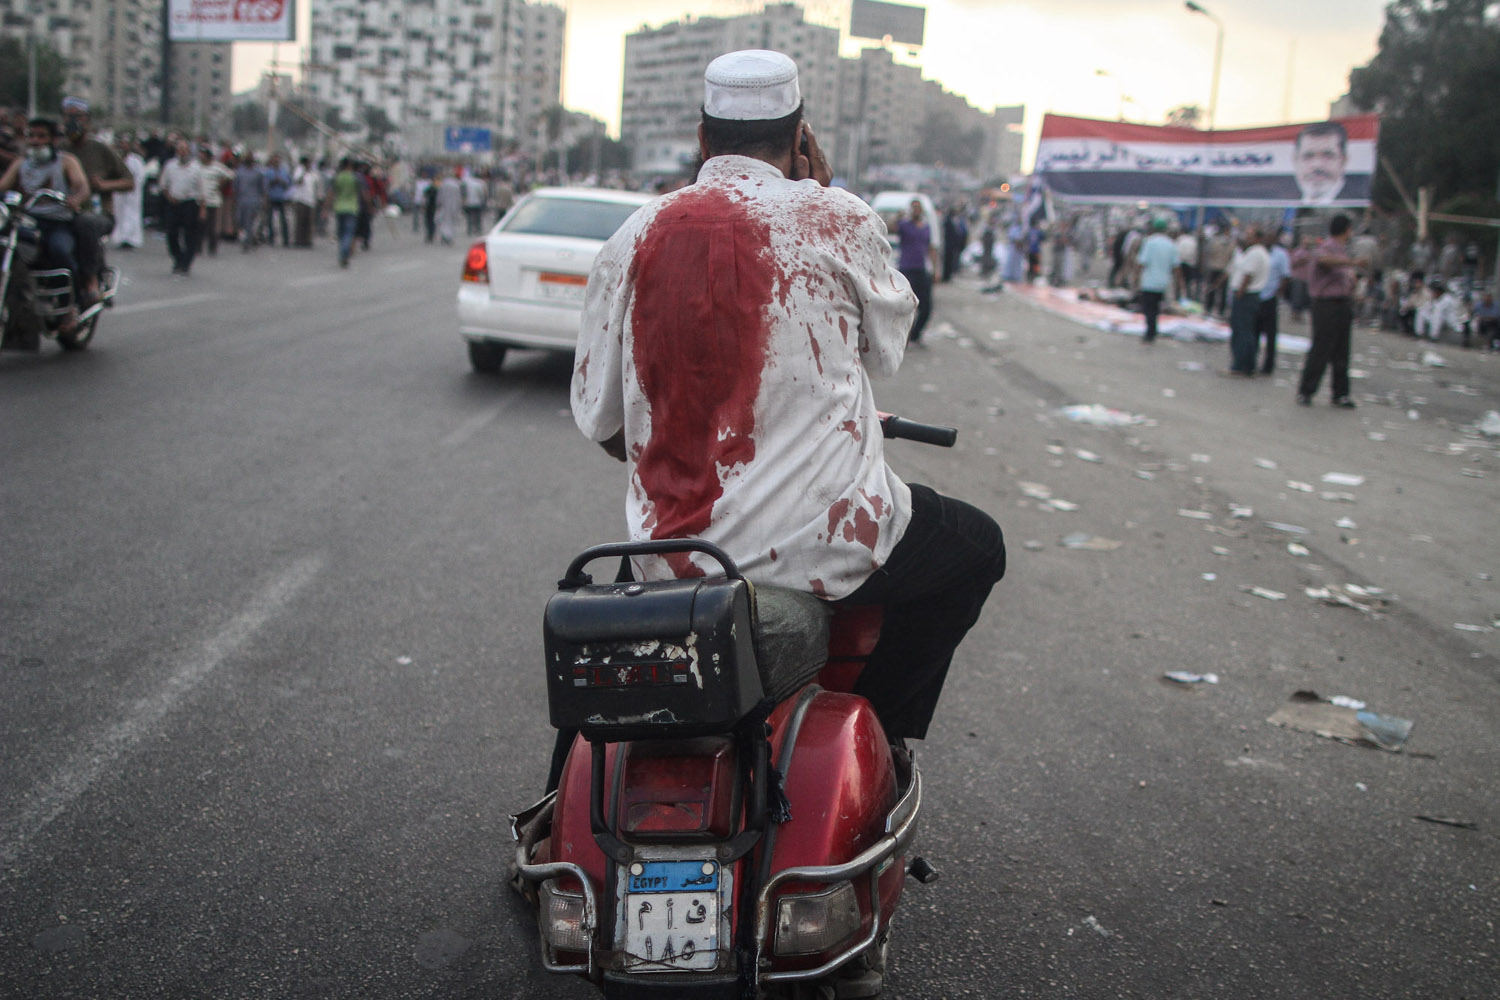 A man with a blood-stained shirt pauses at the scene.